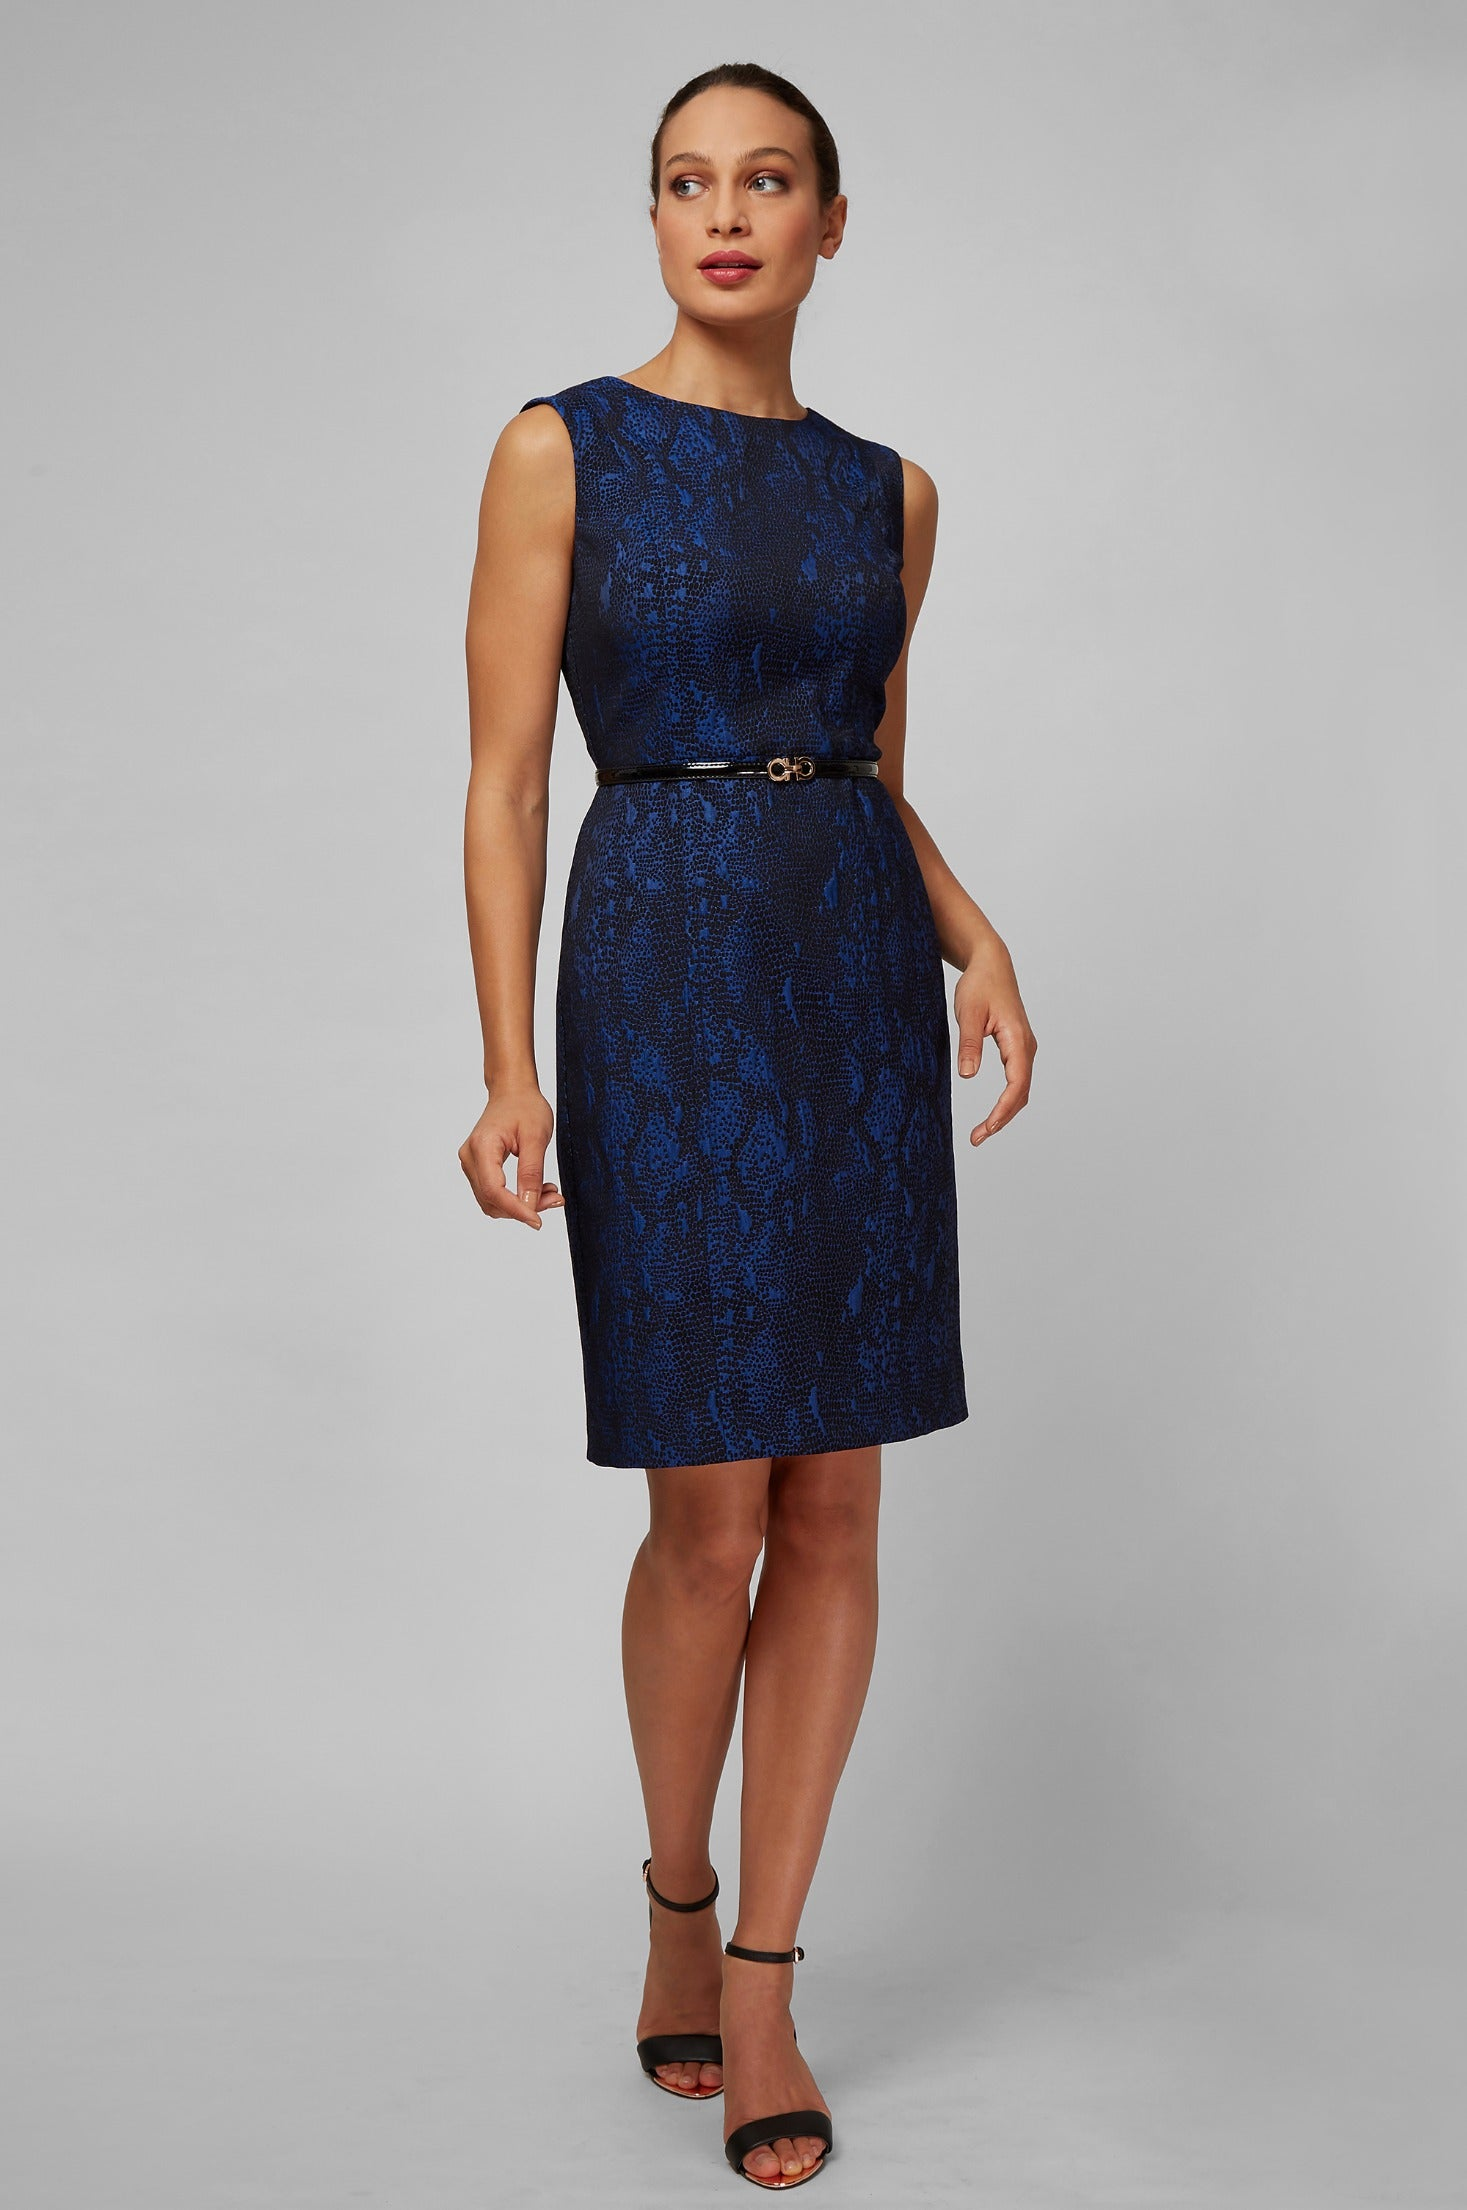 Luna Dress - Blue Viper Jacquard